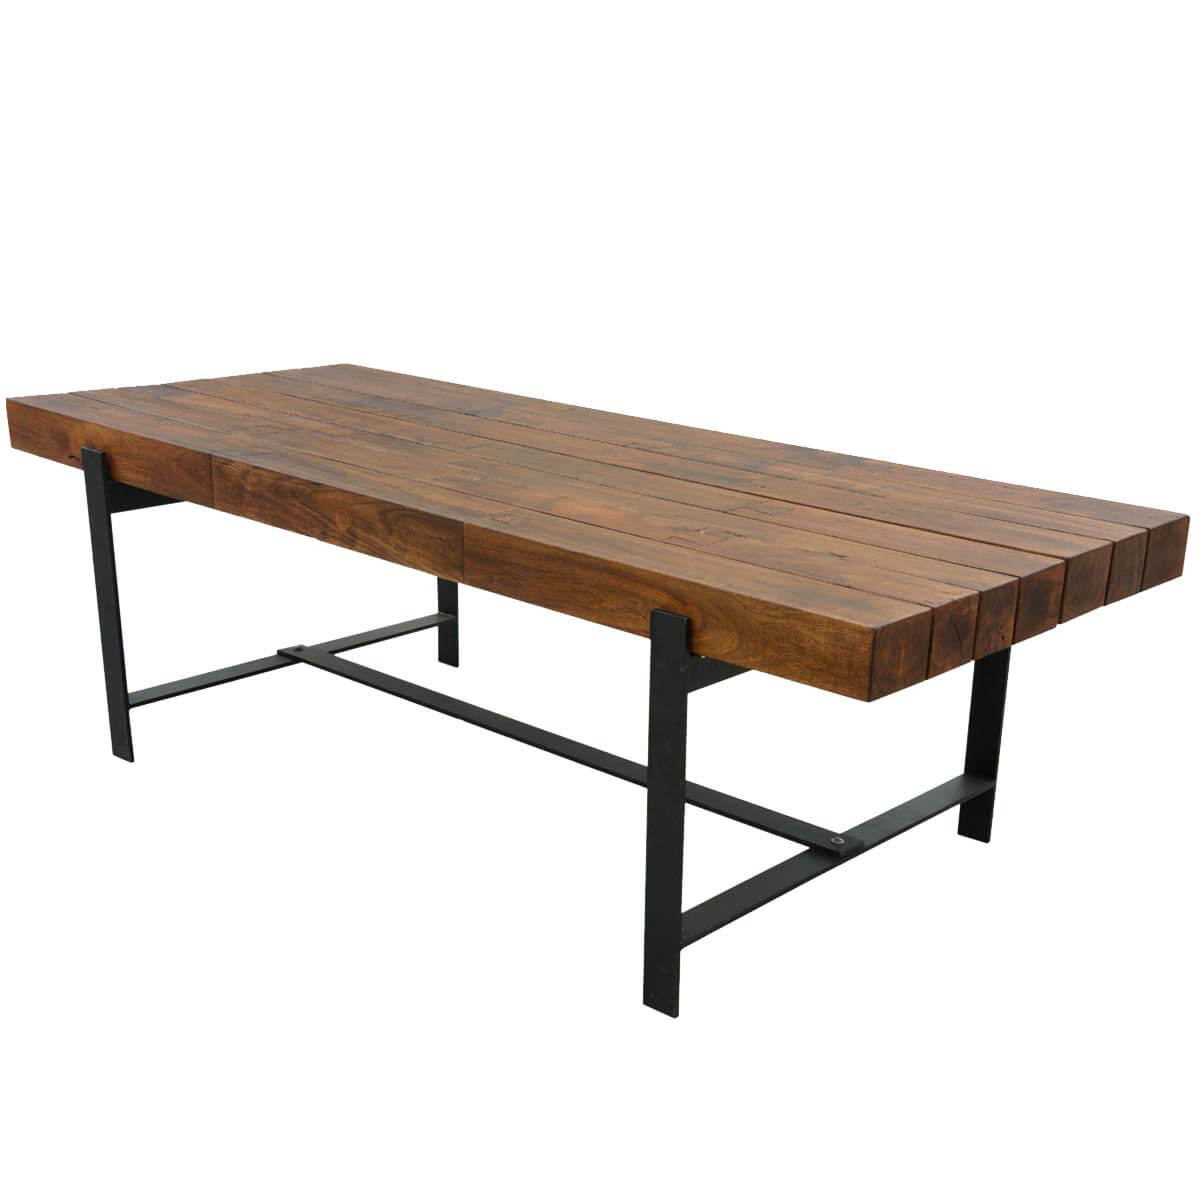 Industrial iron acacia wood 94 large rustic dining table for Biggest dining table